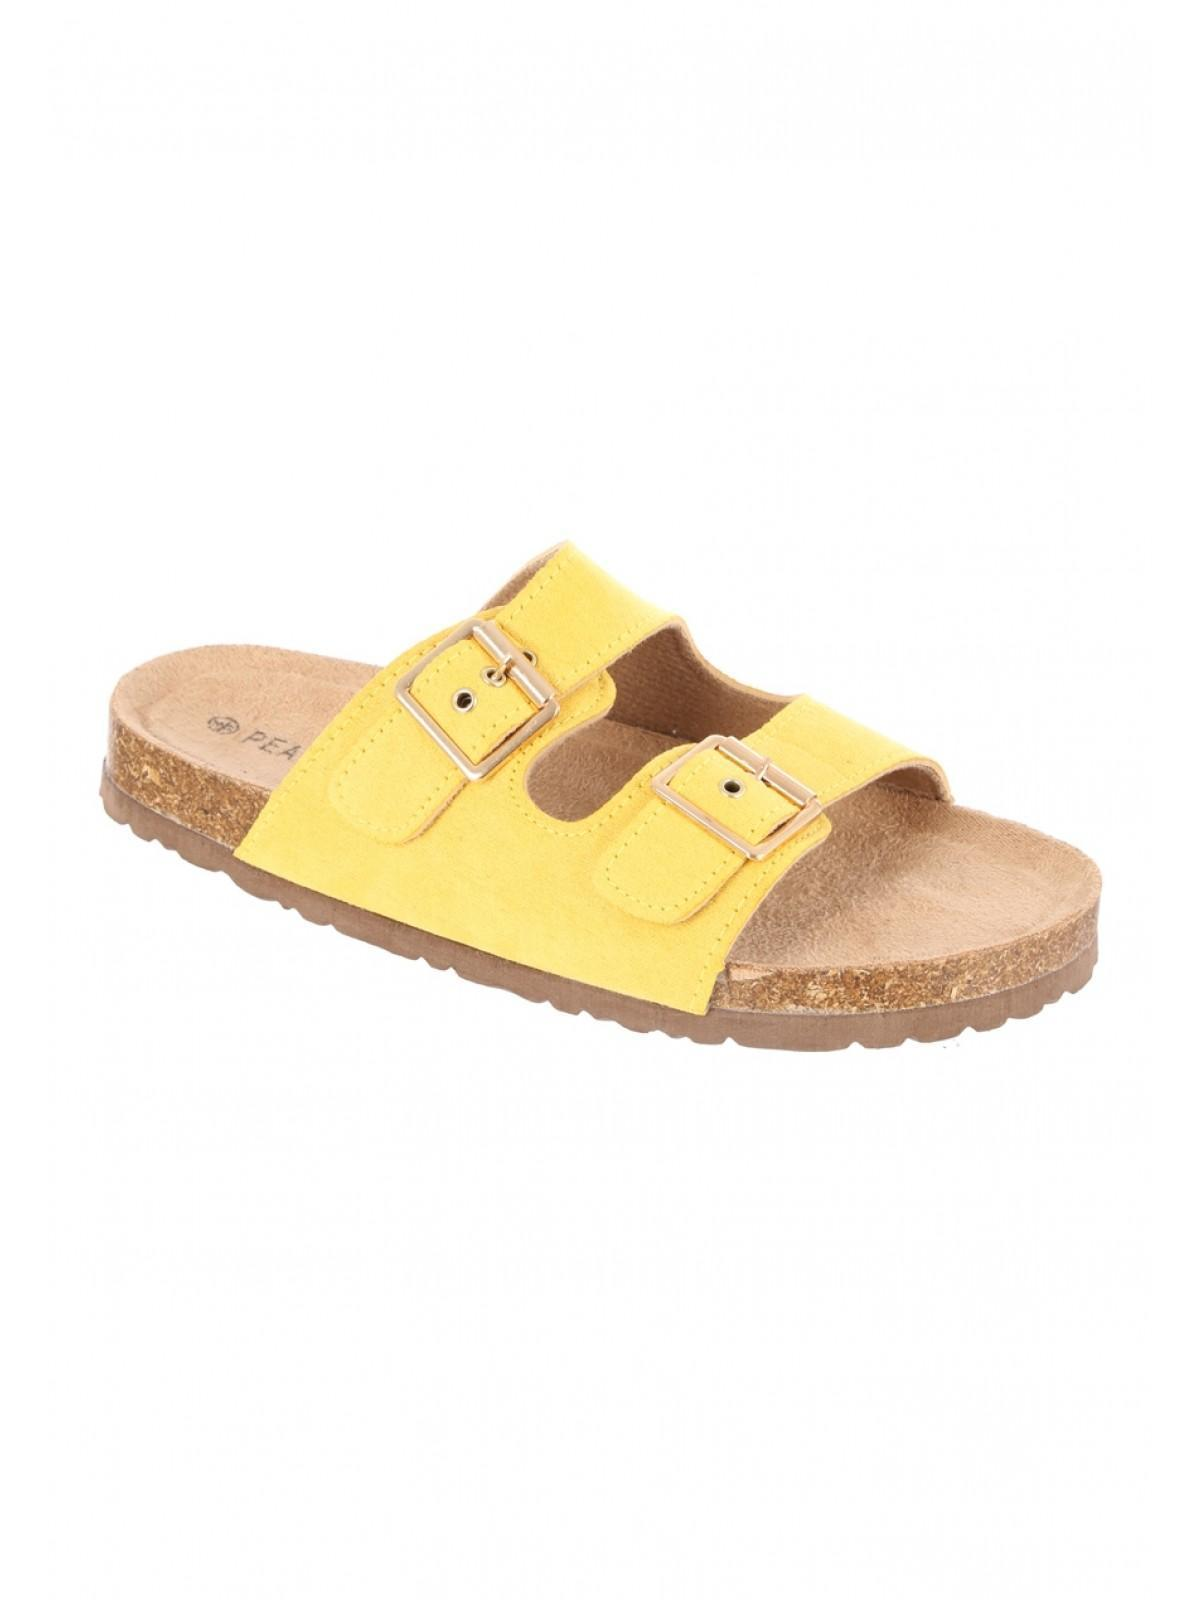 a98060af17cd3 Home; Womens Mustard Double Buckle Footbed Sandals. Back. PreviousNext